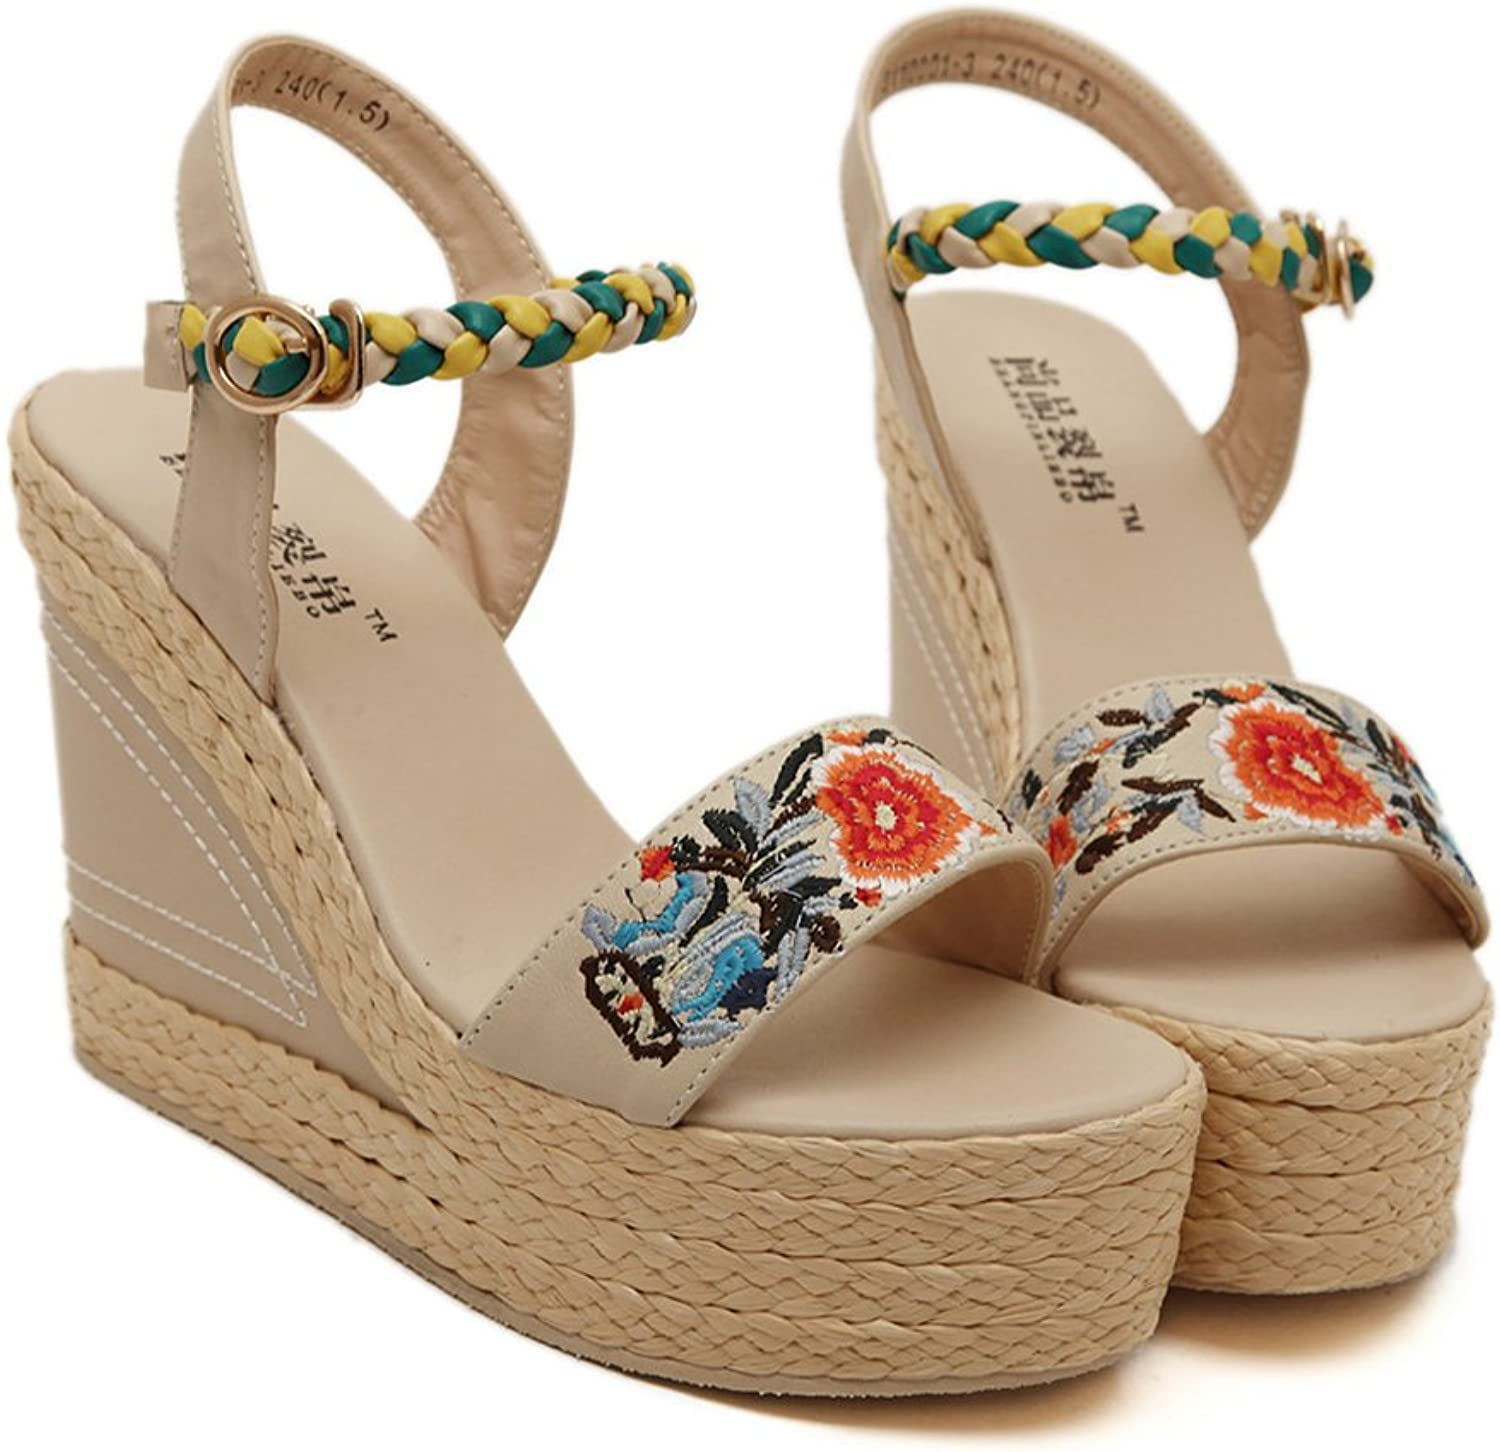 YUhe2018Cw Yu He Fashion Summer Slope Sandals Loafers shoes High Platform Summer Wedge Sandal Women Apricot 40